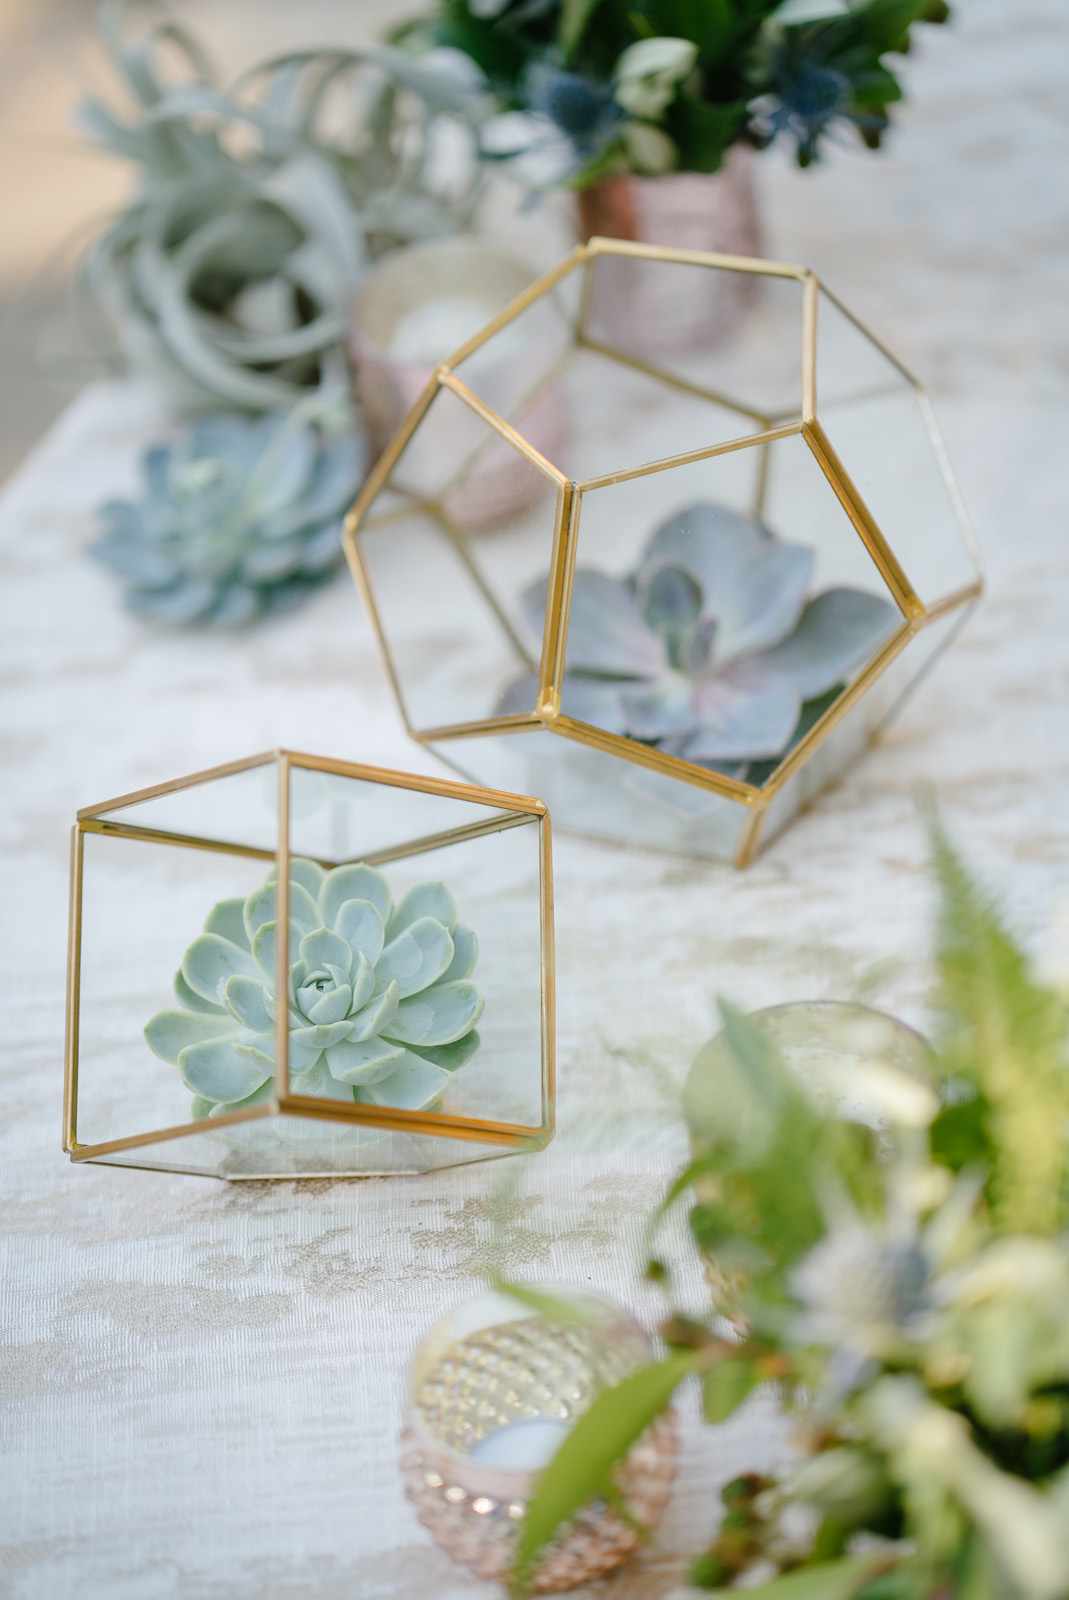 14 Modern Geometric Designs and Elements to Incorporate into Wedding ...